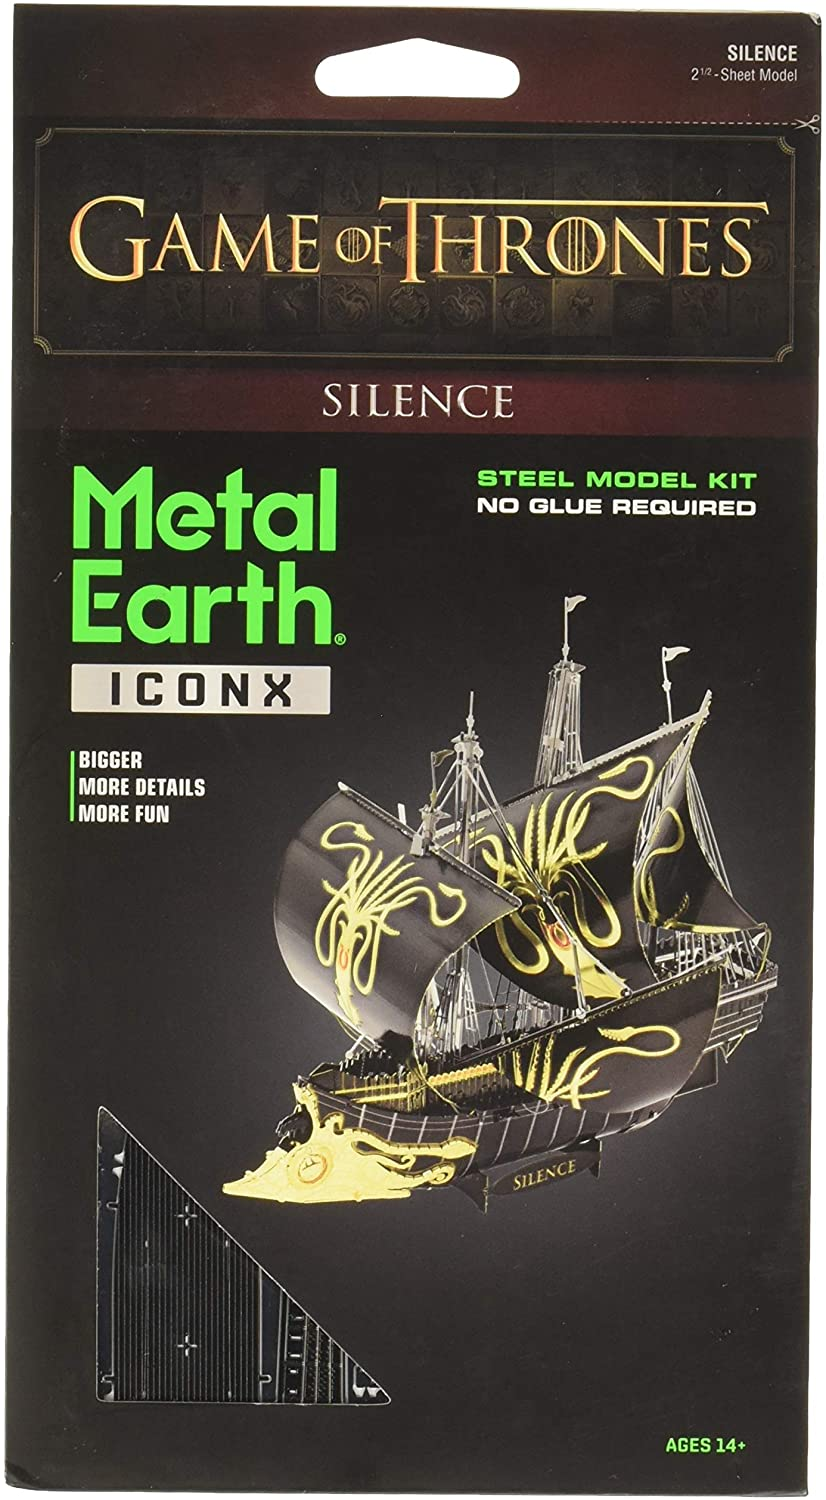 METAL EARTH Game of Thrones Silence 3D Model